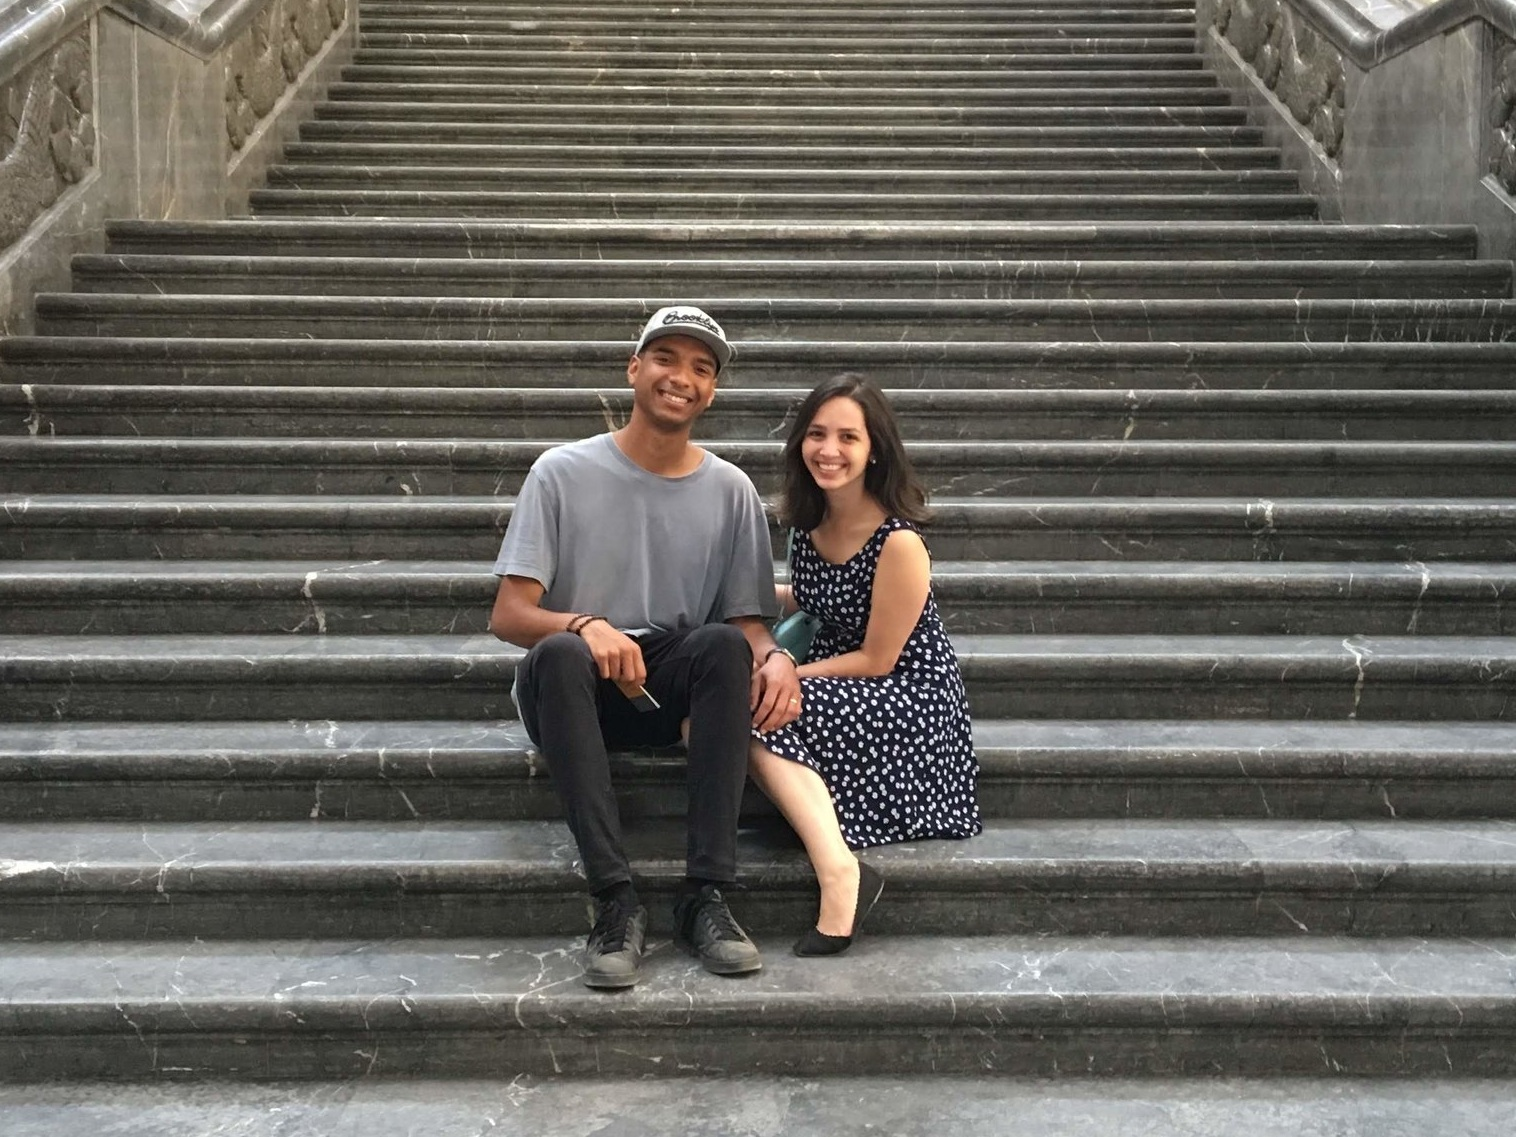 Jay and Bruna - Originally from Rio de Janeiro, Brazil, Jay and Bruna moved to Dublin in 2016. Jay is a sound engineer and Bruna is an Interior Design student and together they lead Vine. They have a strong passion for helping people connect with God and to develop their full potential.